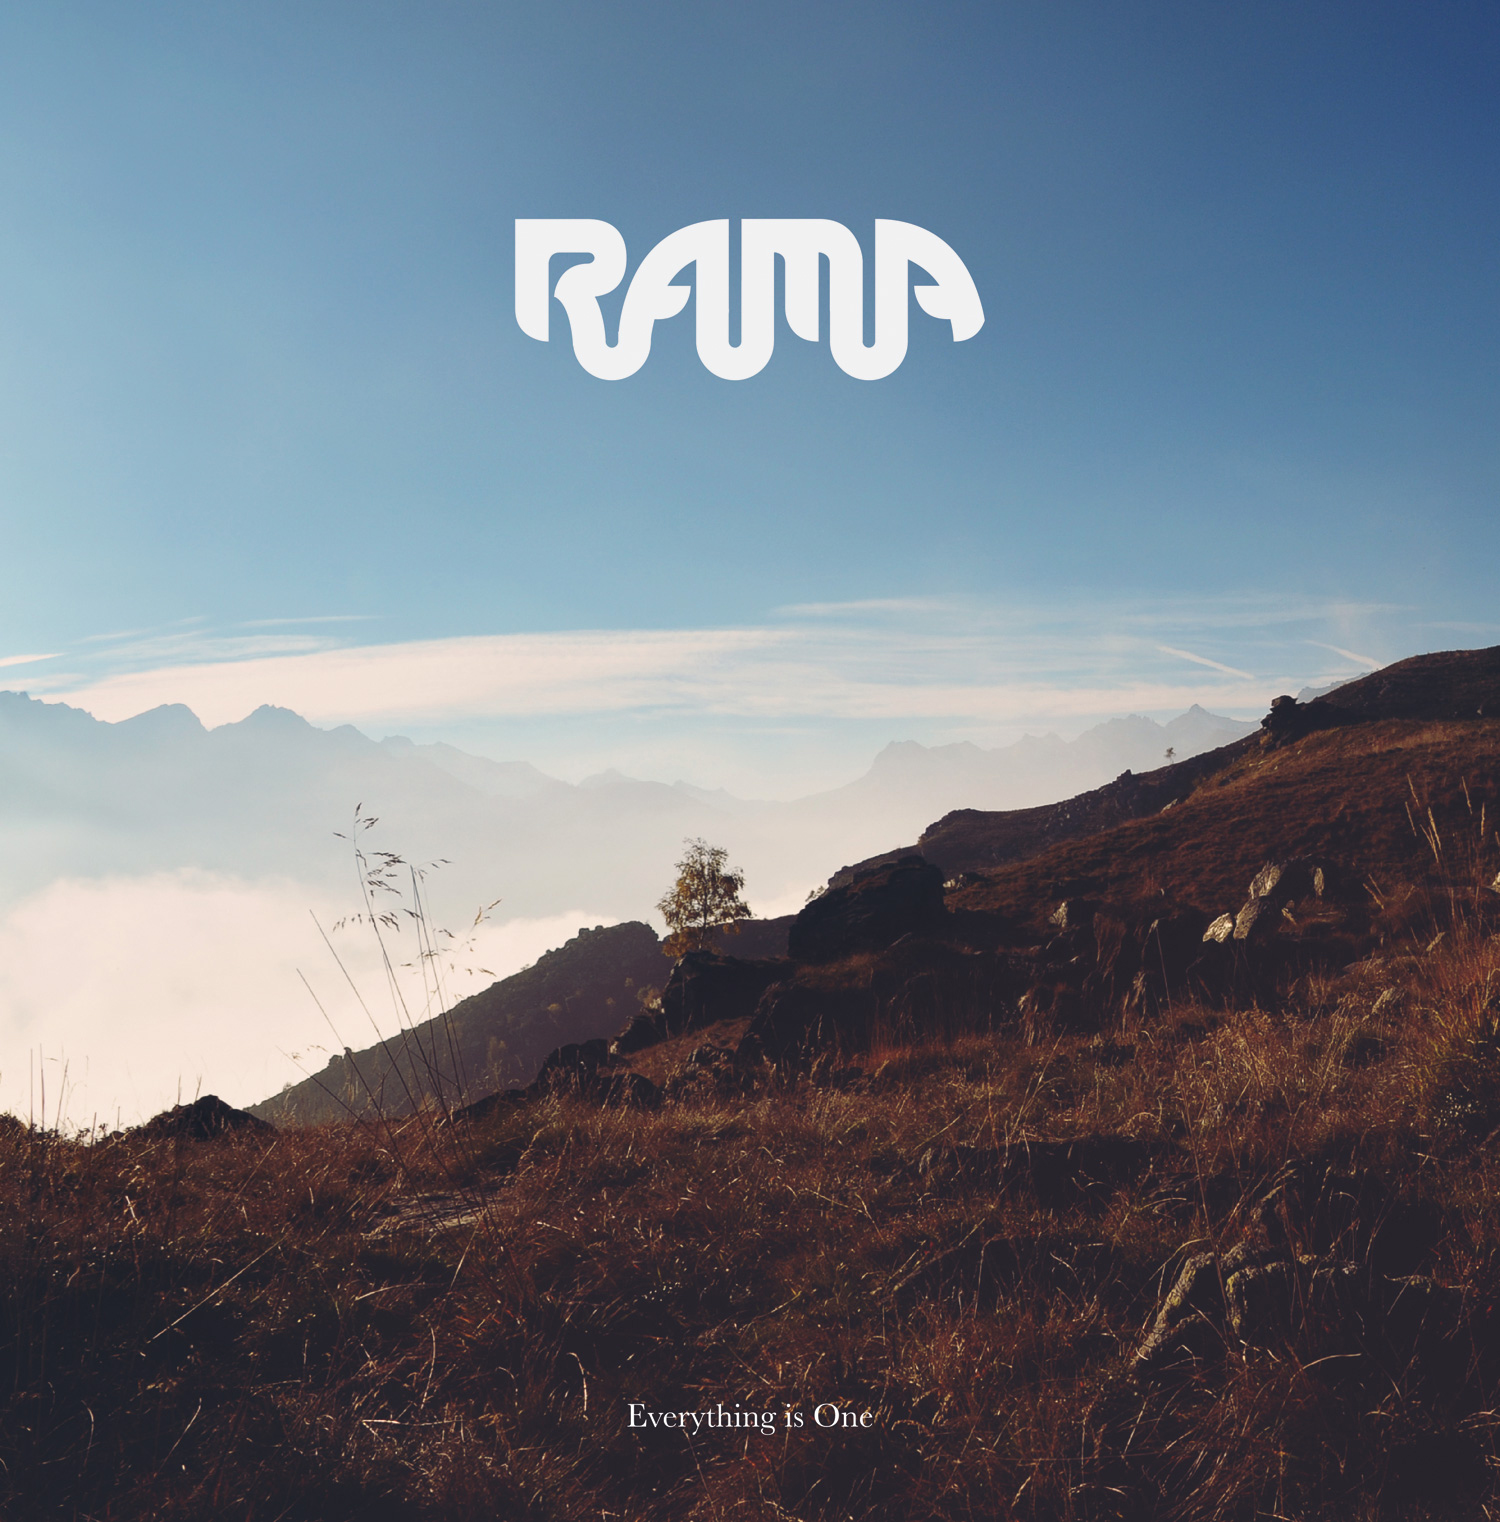 rama-everything-is-one-desertrock-album-review